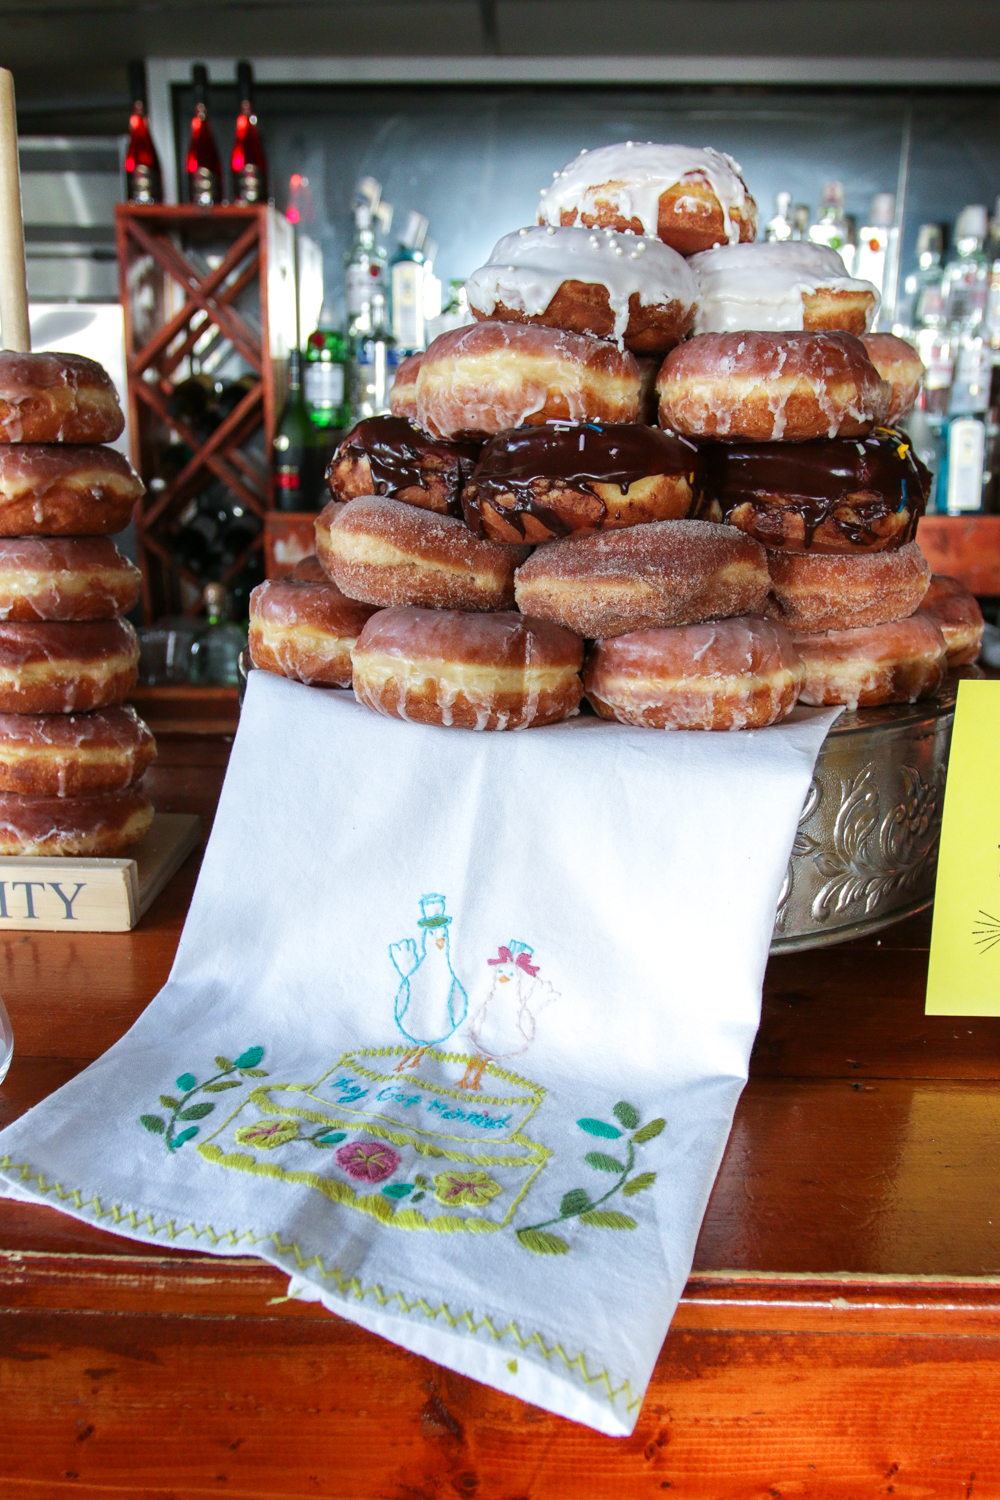 Wedding Cake made up of District Donuts in New Orleans, LA.